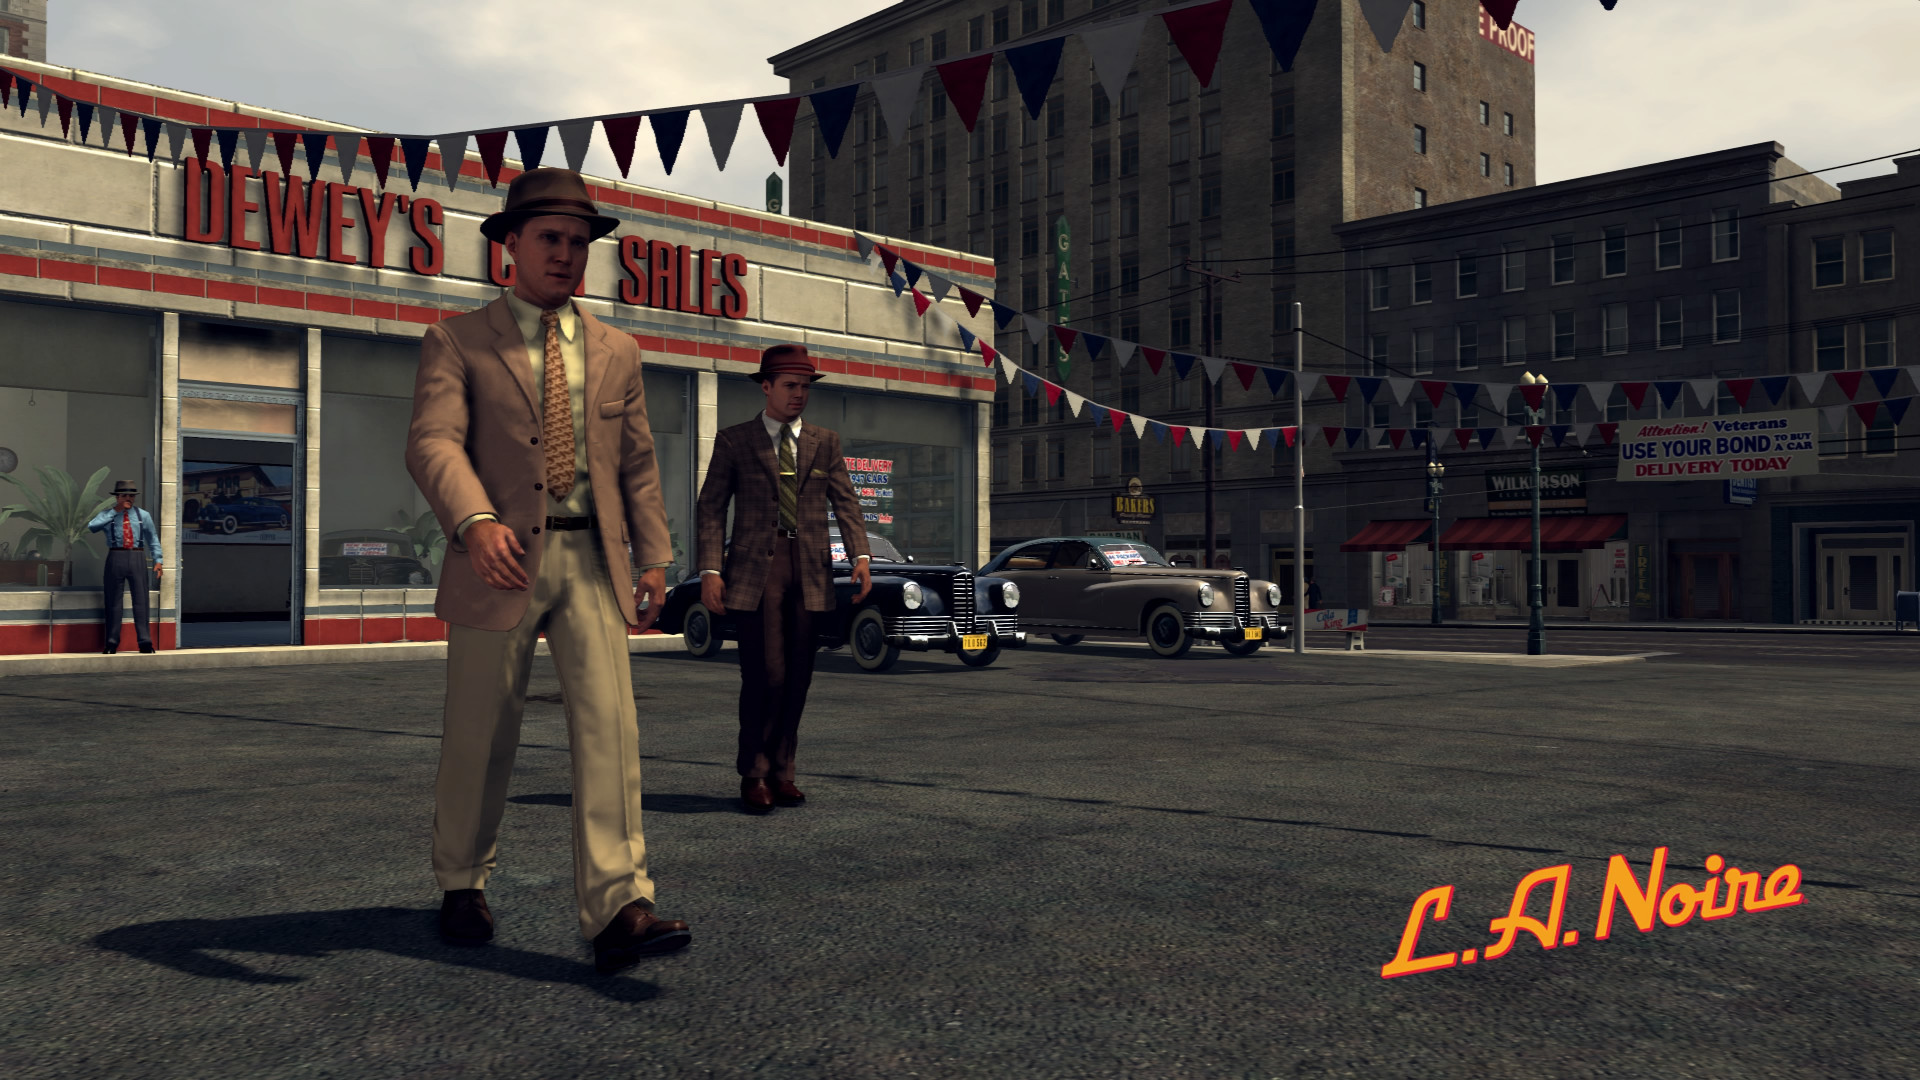 playstations video game l a noire is Shop for playstation 3 (ps3) consoles in playstation 3 buy products such as refurbished sony playstation ps3 slim 160gb console at walmart and save.